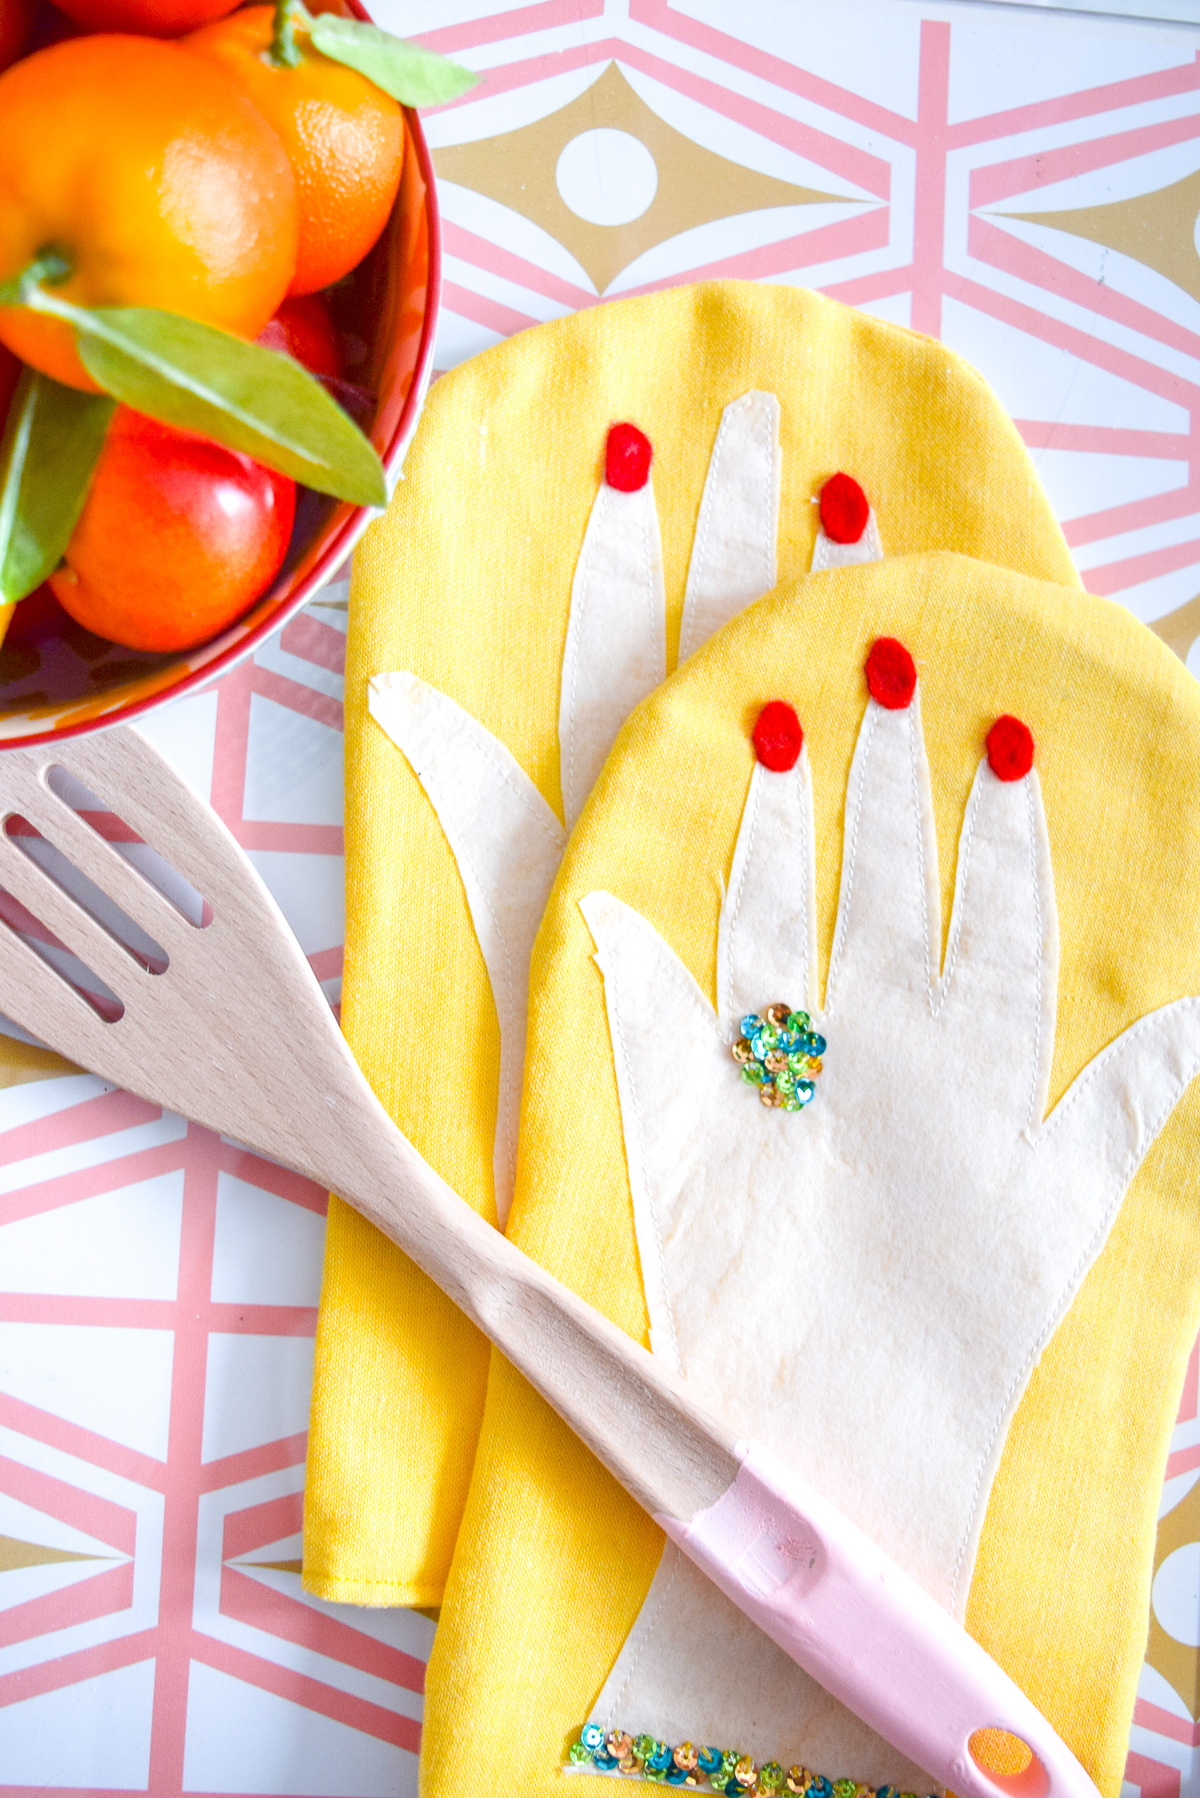 spatula on hand shaped oven mitts